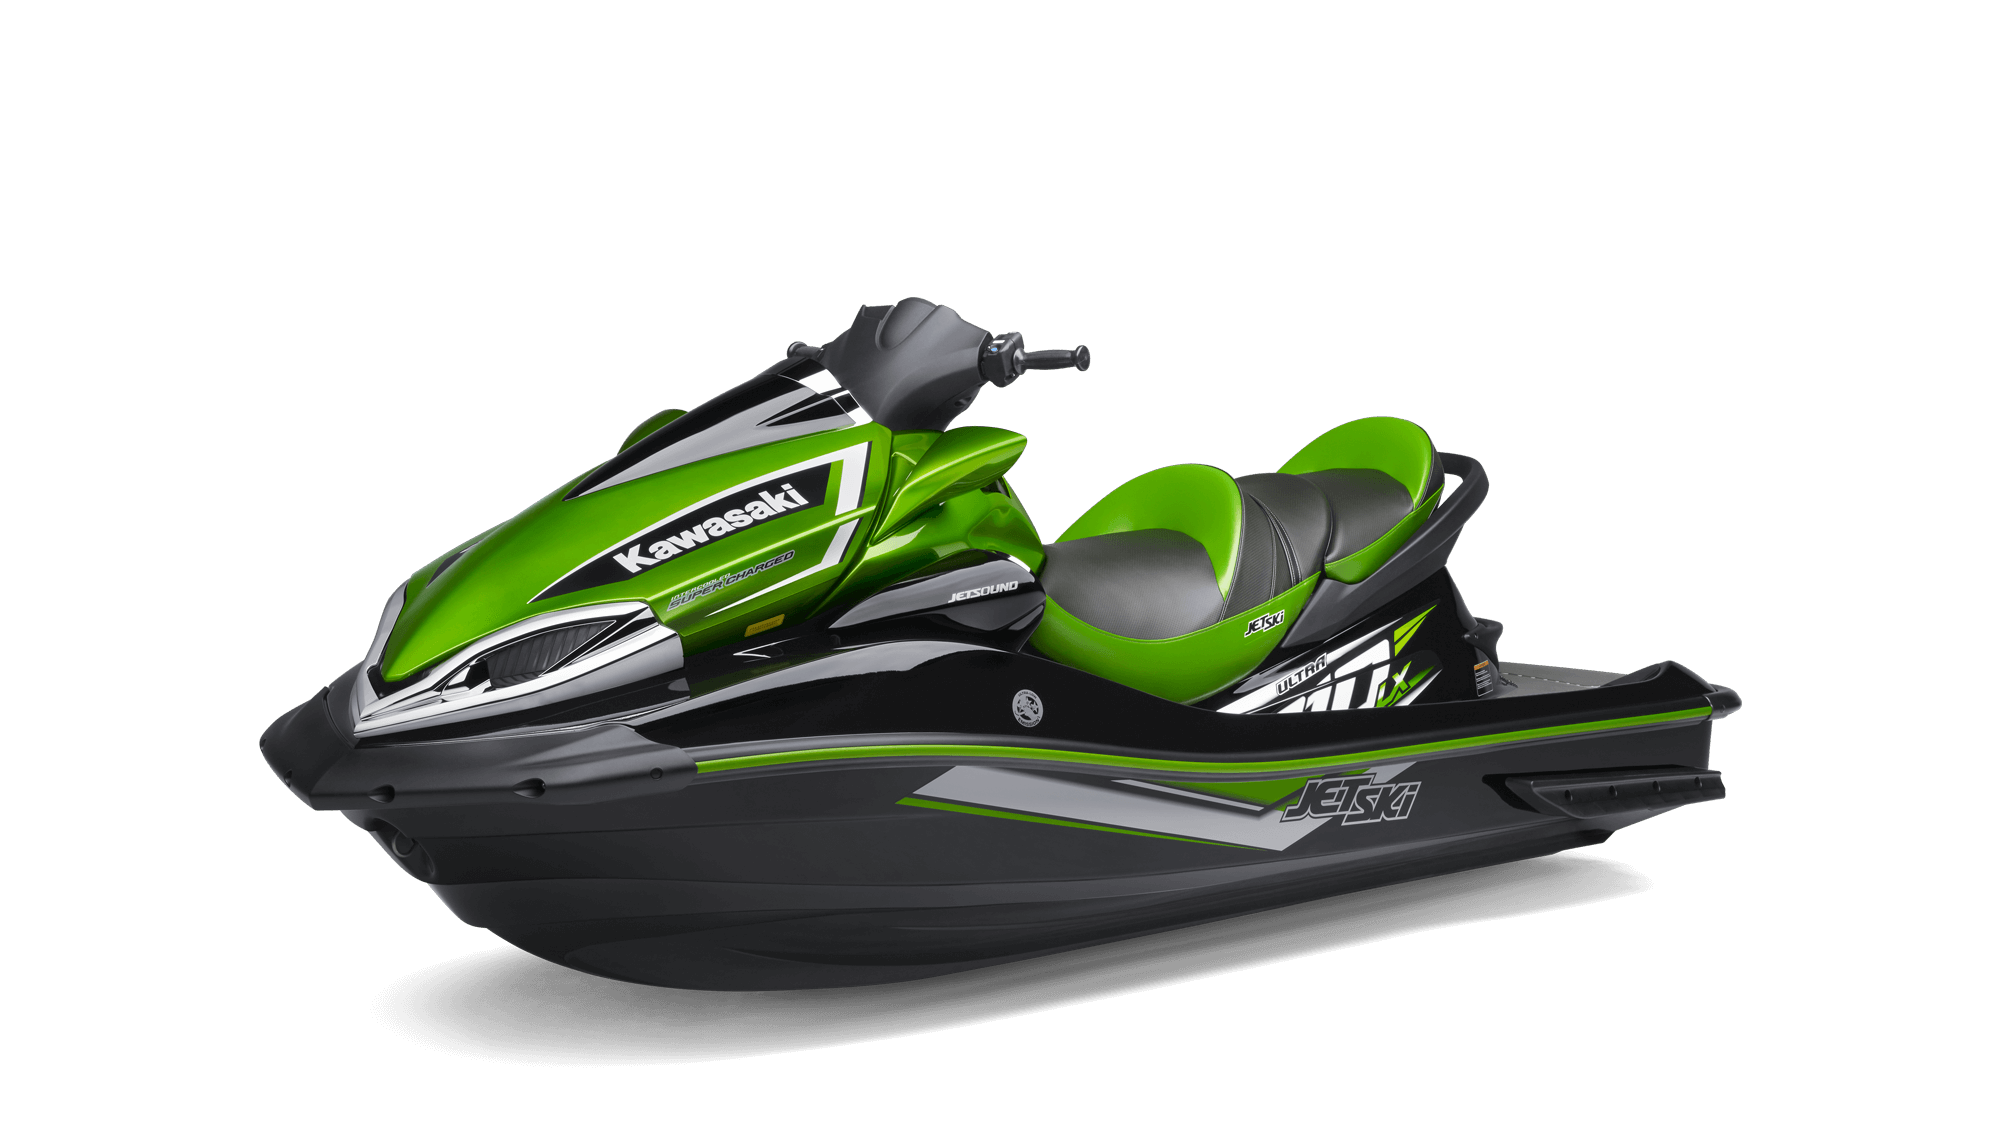 2018 JET SKI ULTRA 310LX JET SKI Watercraft by Kawasaki